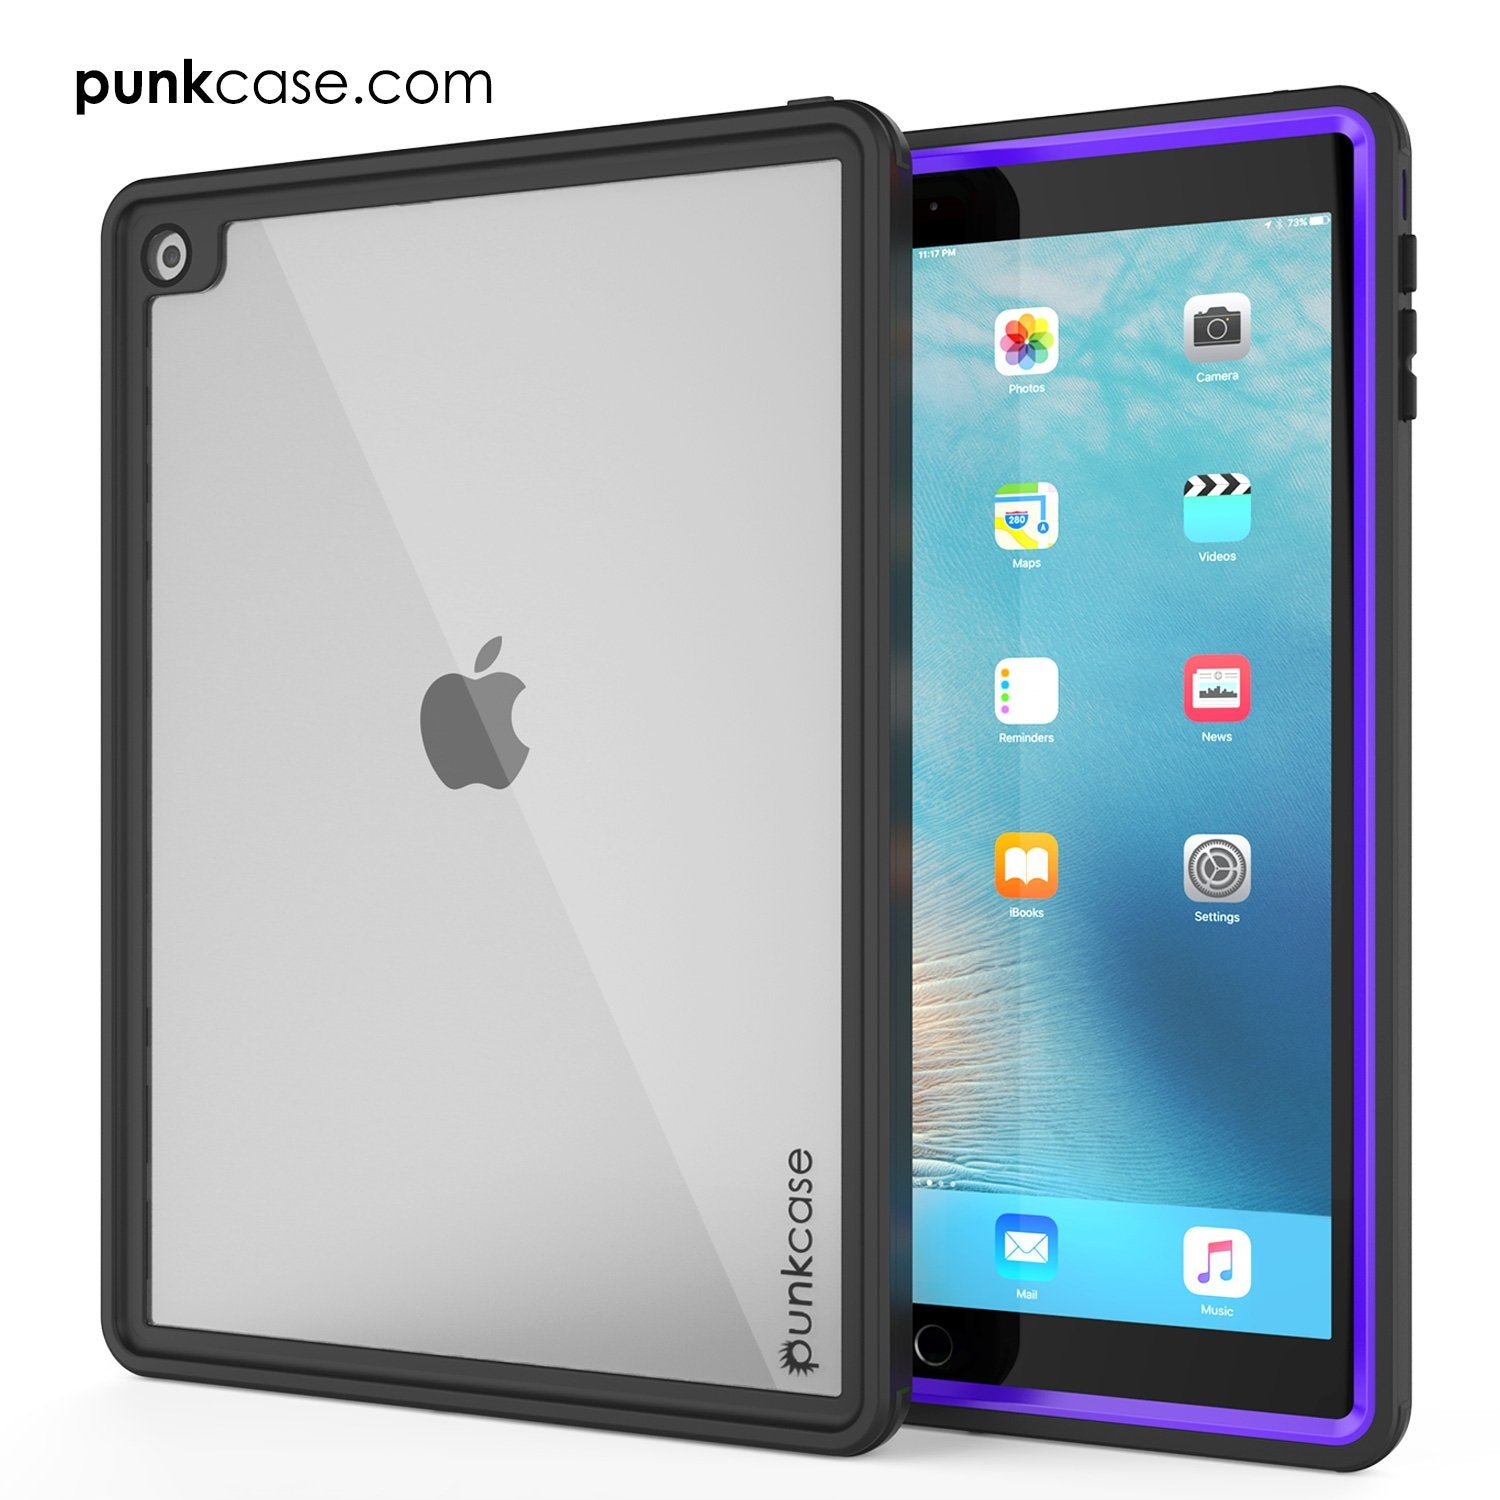 Punkcase iPad Pro 9.7 Case [CRYSTAL Series], Waterproof, Ultra-Thin Cover [Shockproof] [Dustproof] with Built-in Screen Protector [Purple]